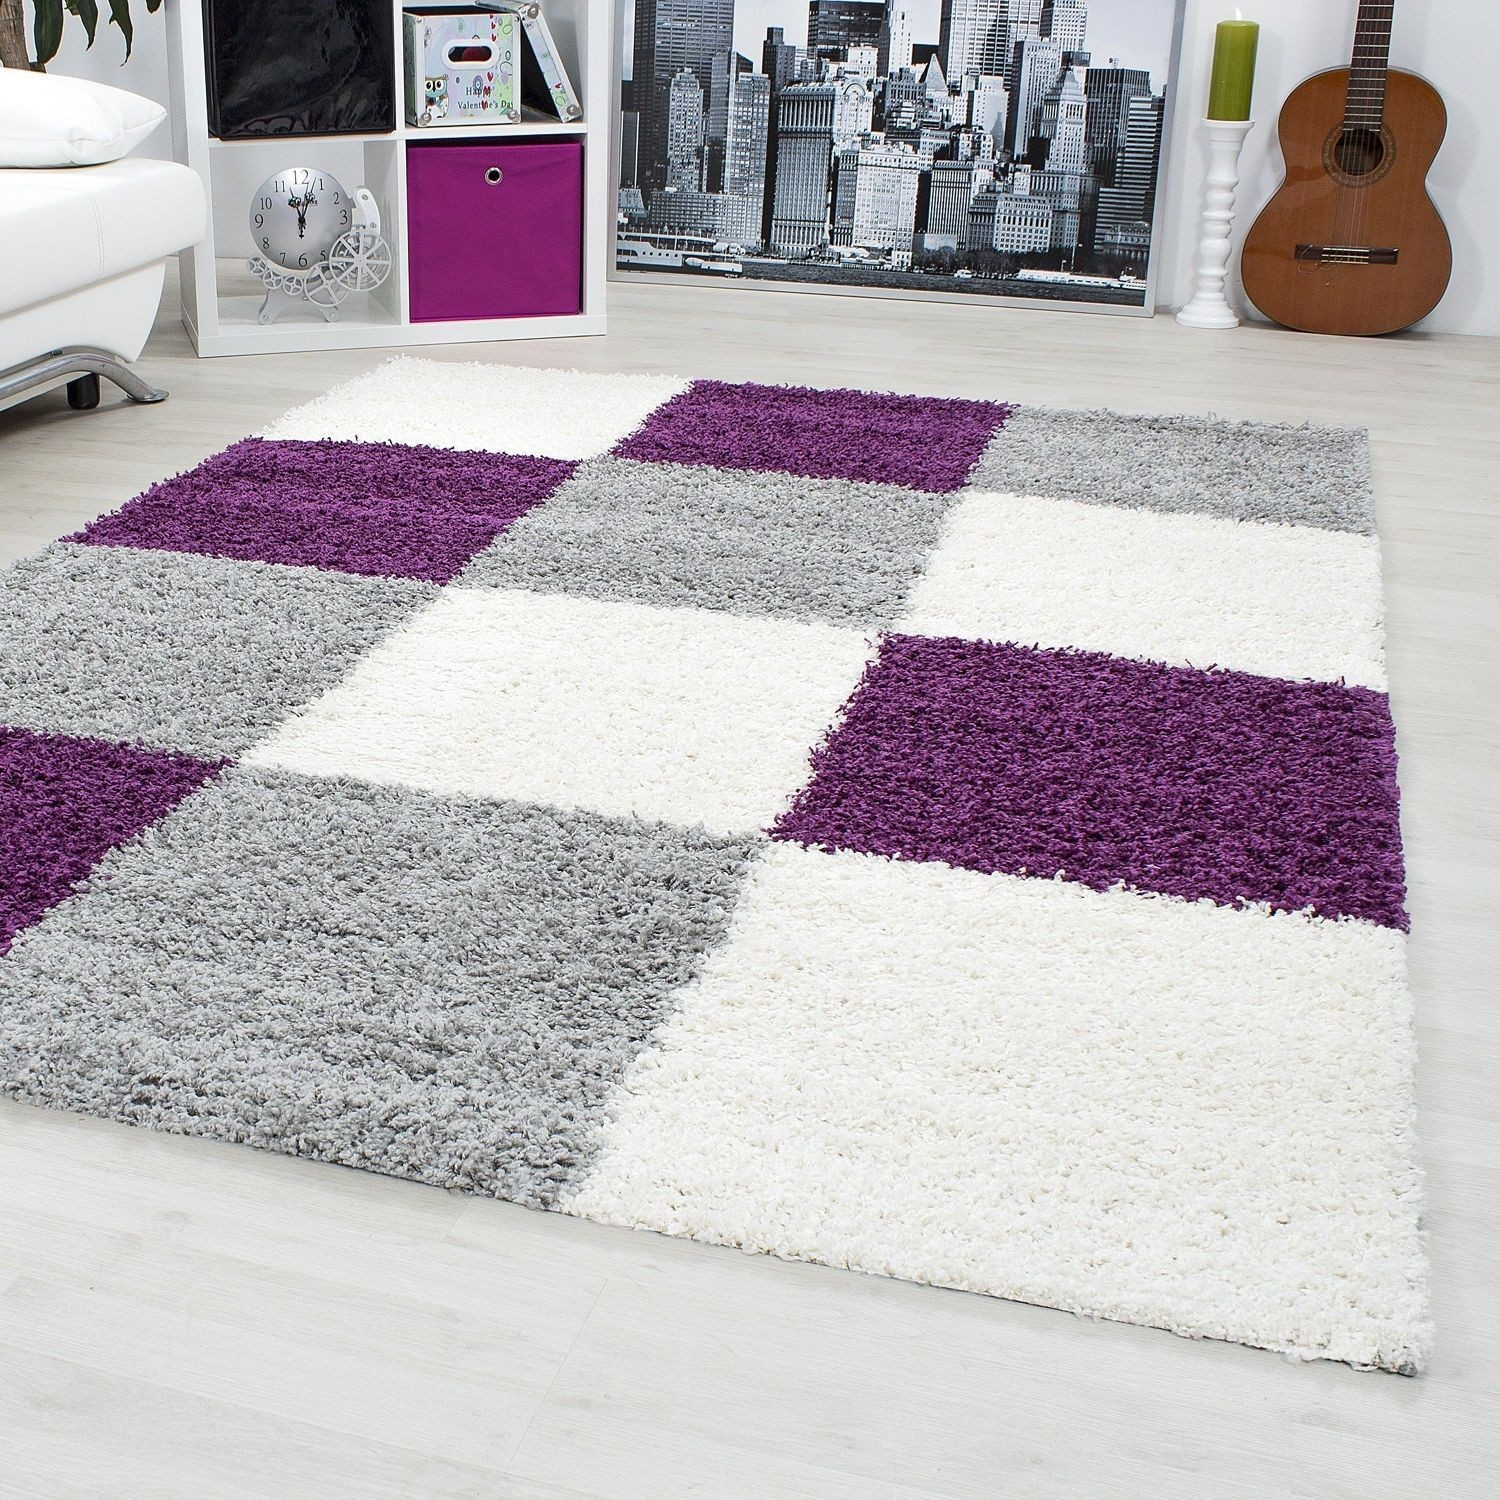 tapis shaggy longues meches violette gris cream hautes carreaux vasco